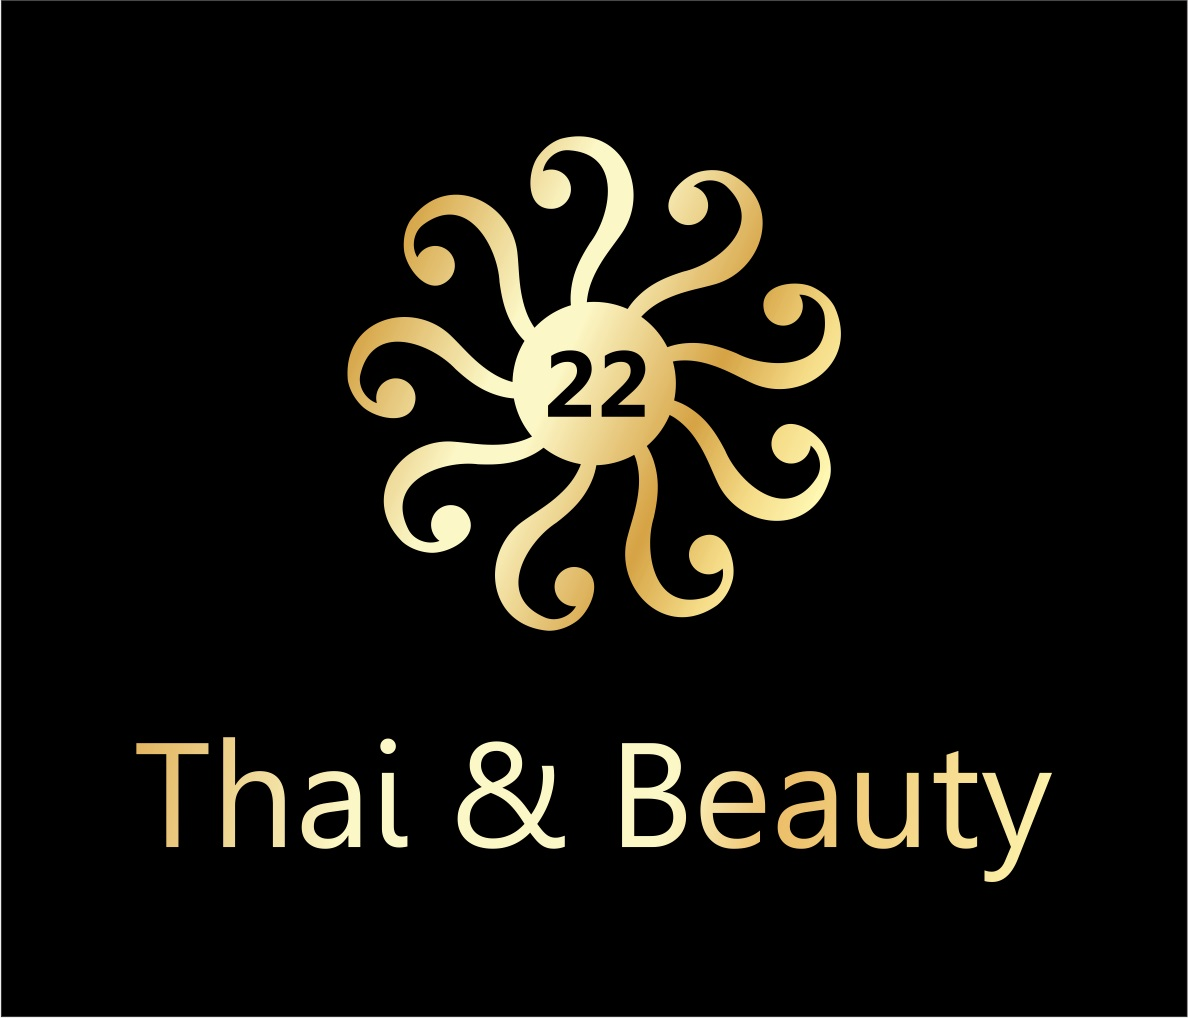 22 Thai & Beauty